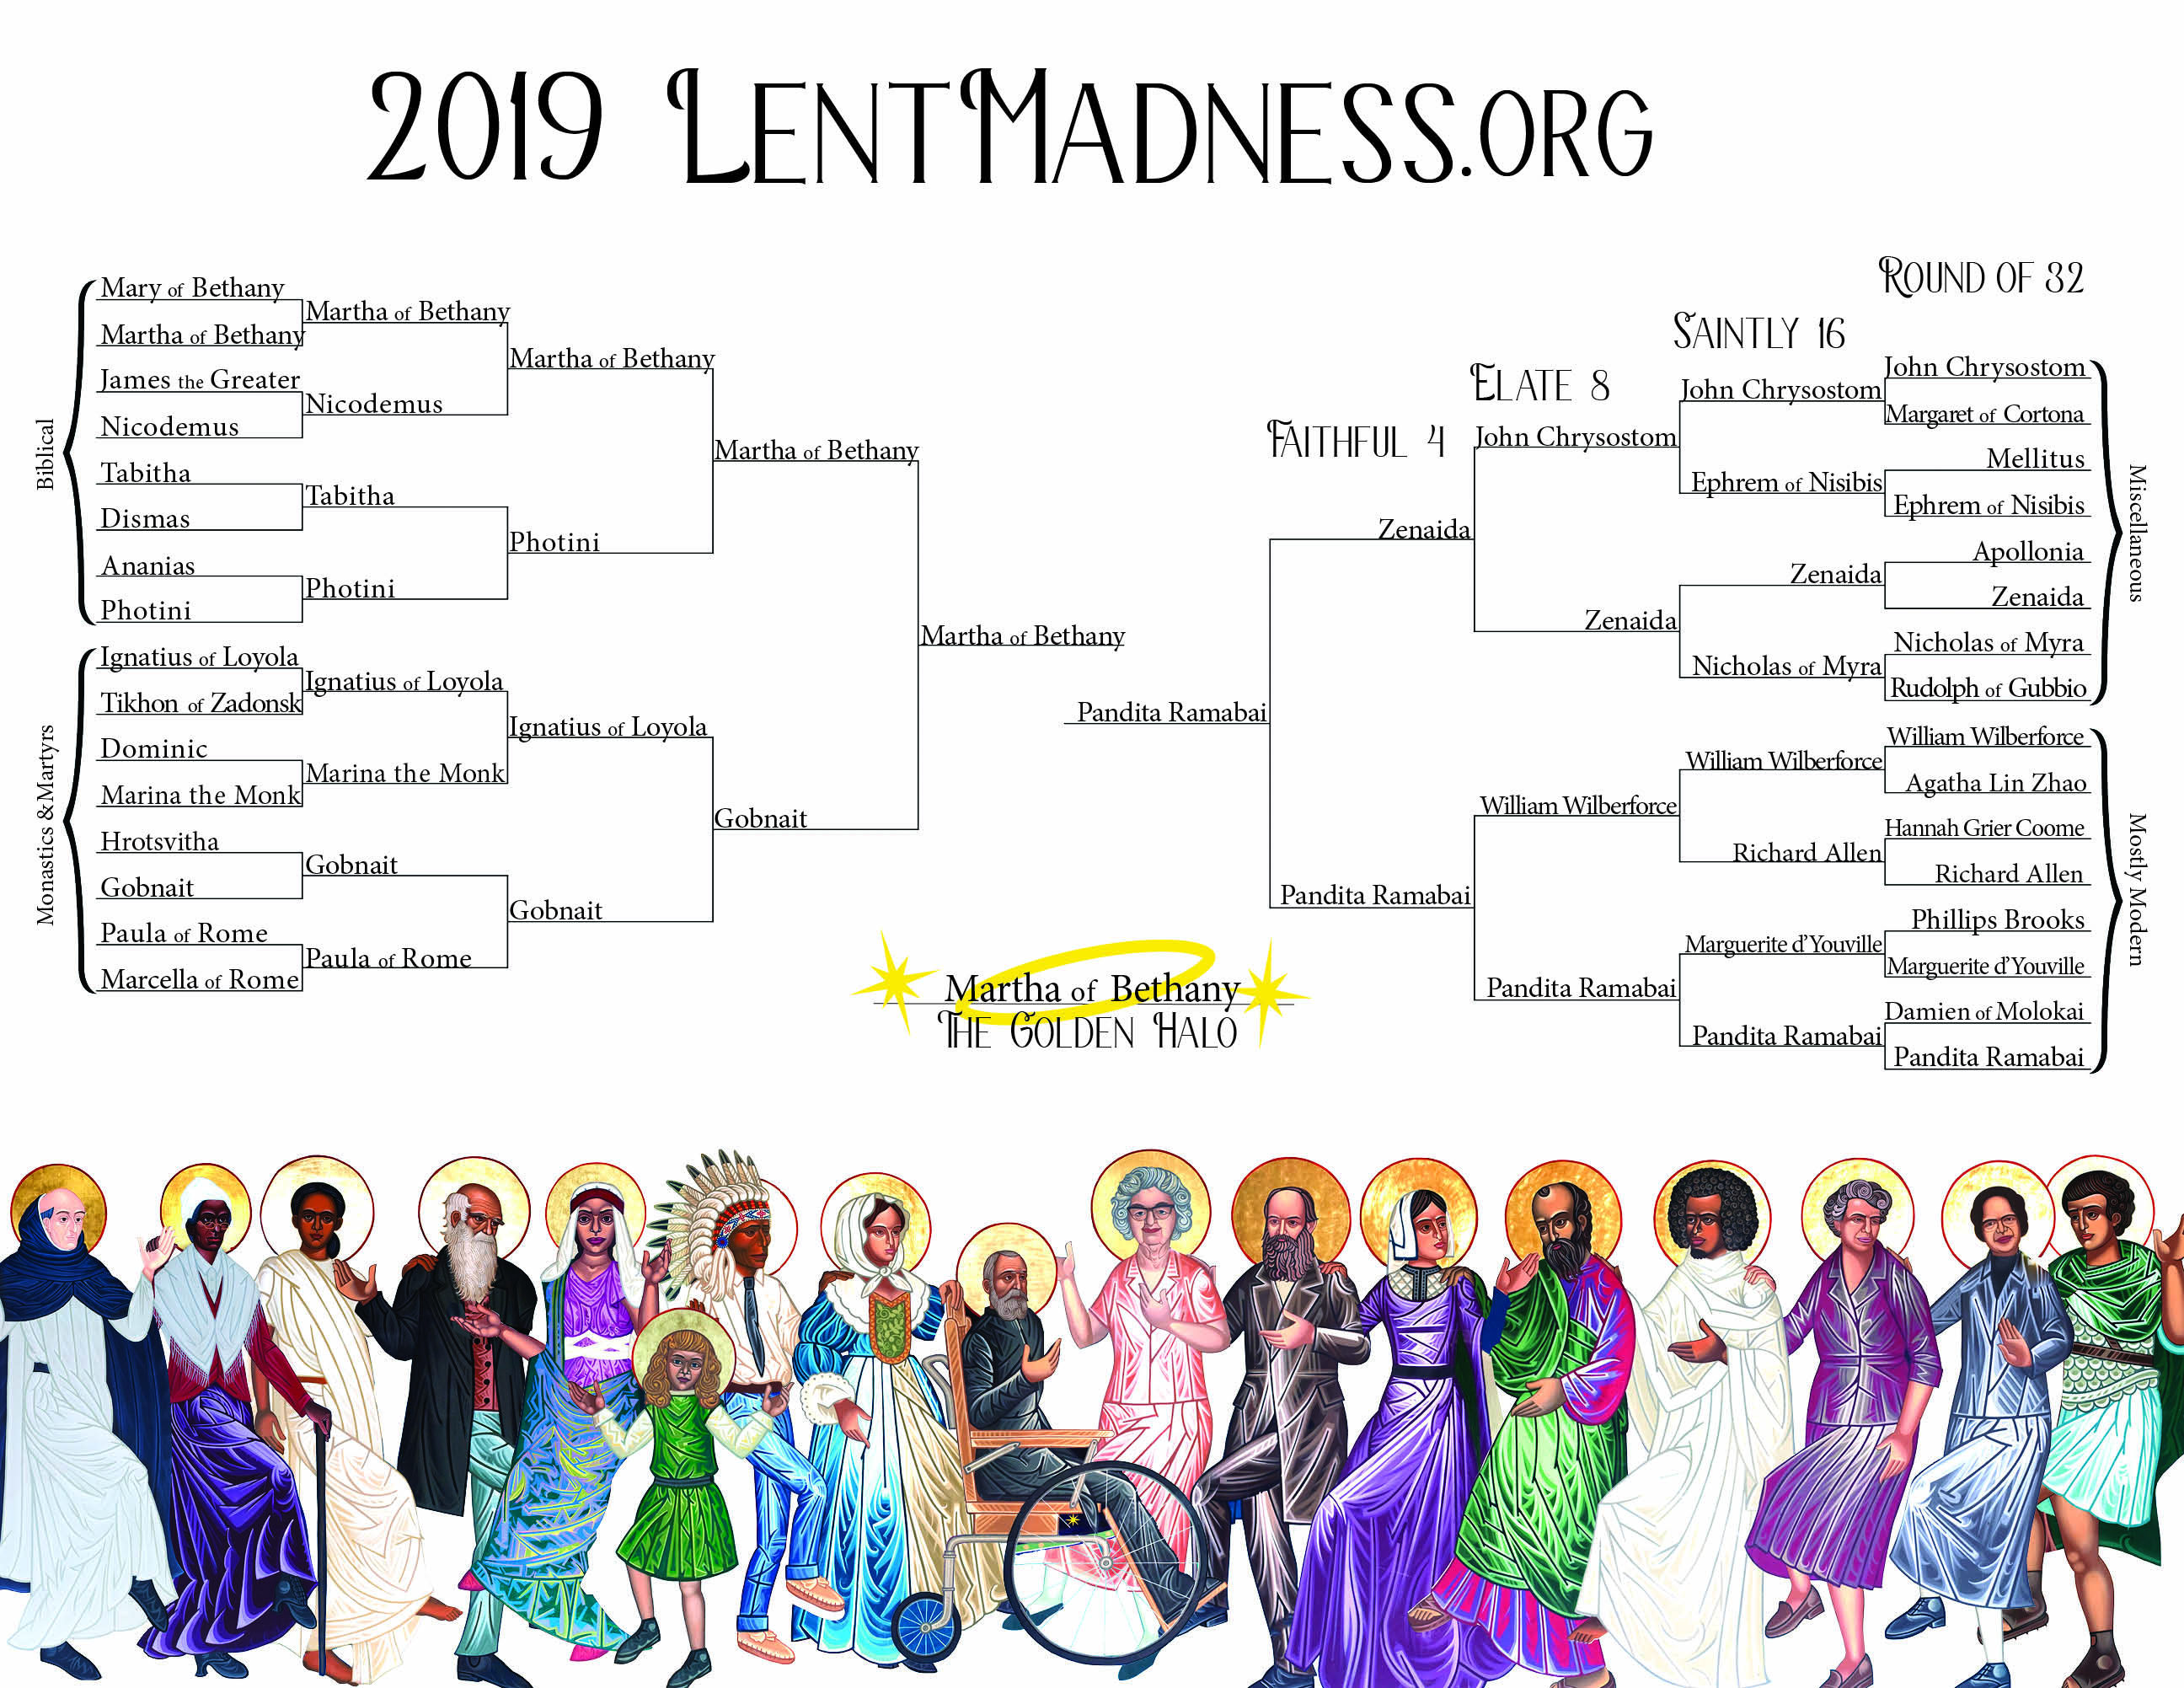 a1680bc3a7 Check out the 2019 bracket